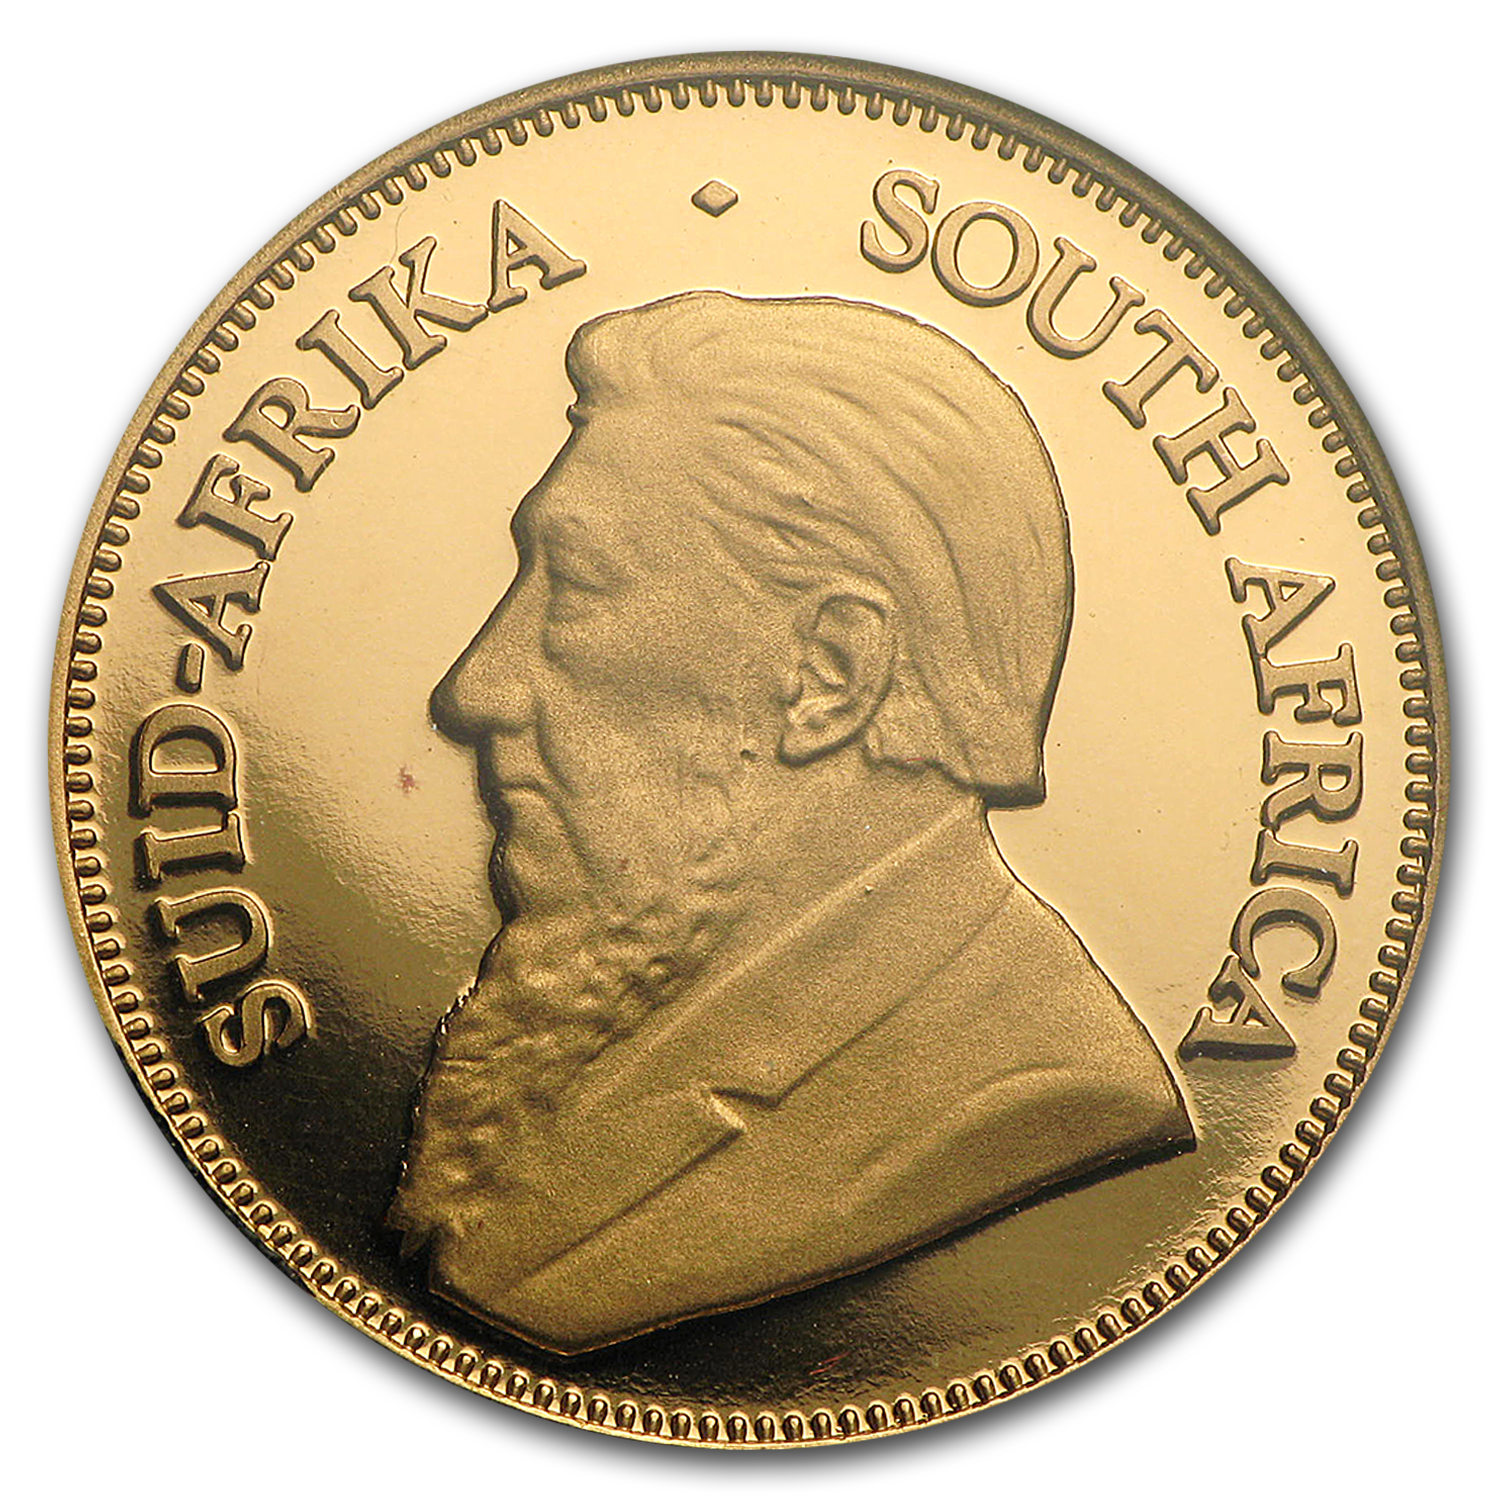 2005 1/4 oz Gold South African Krugerrand (Proof)